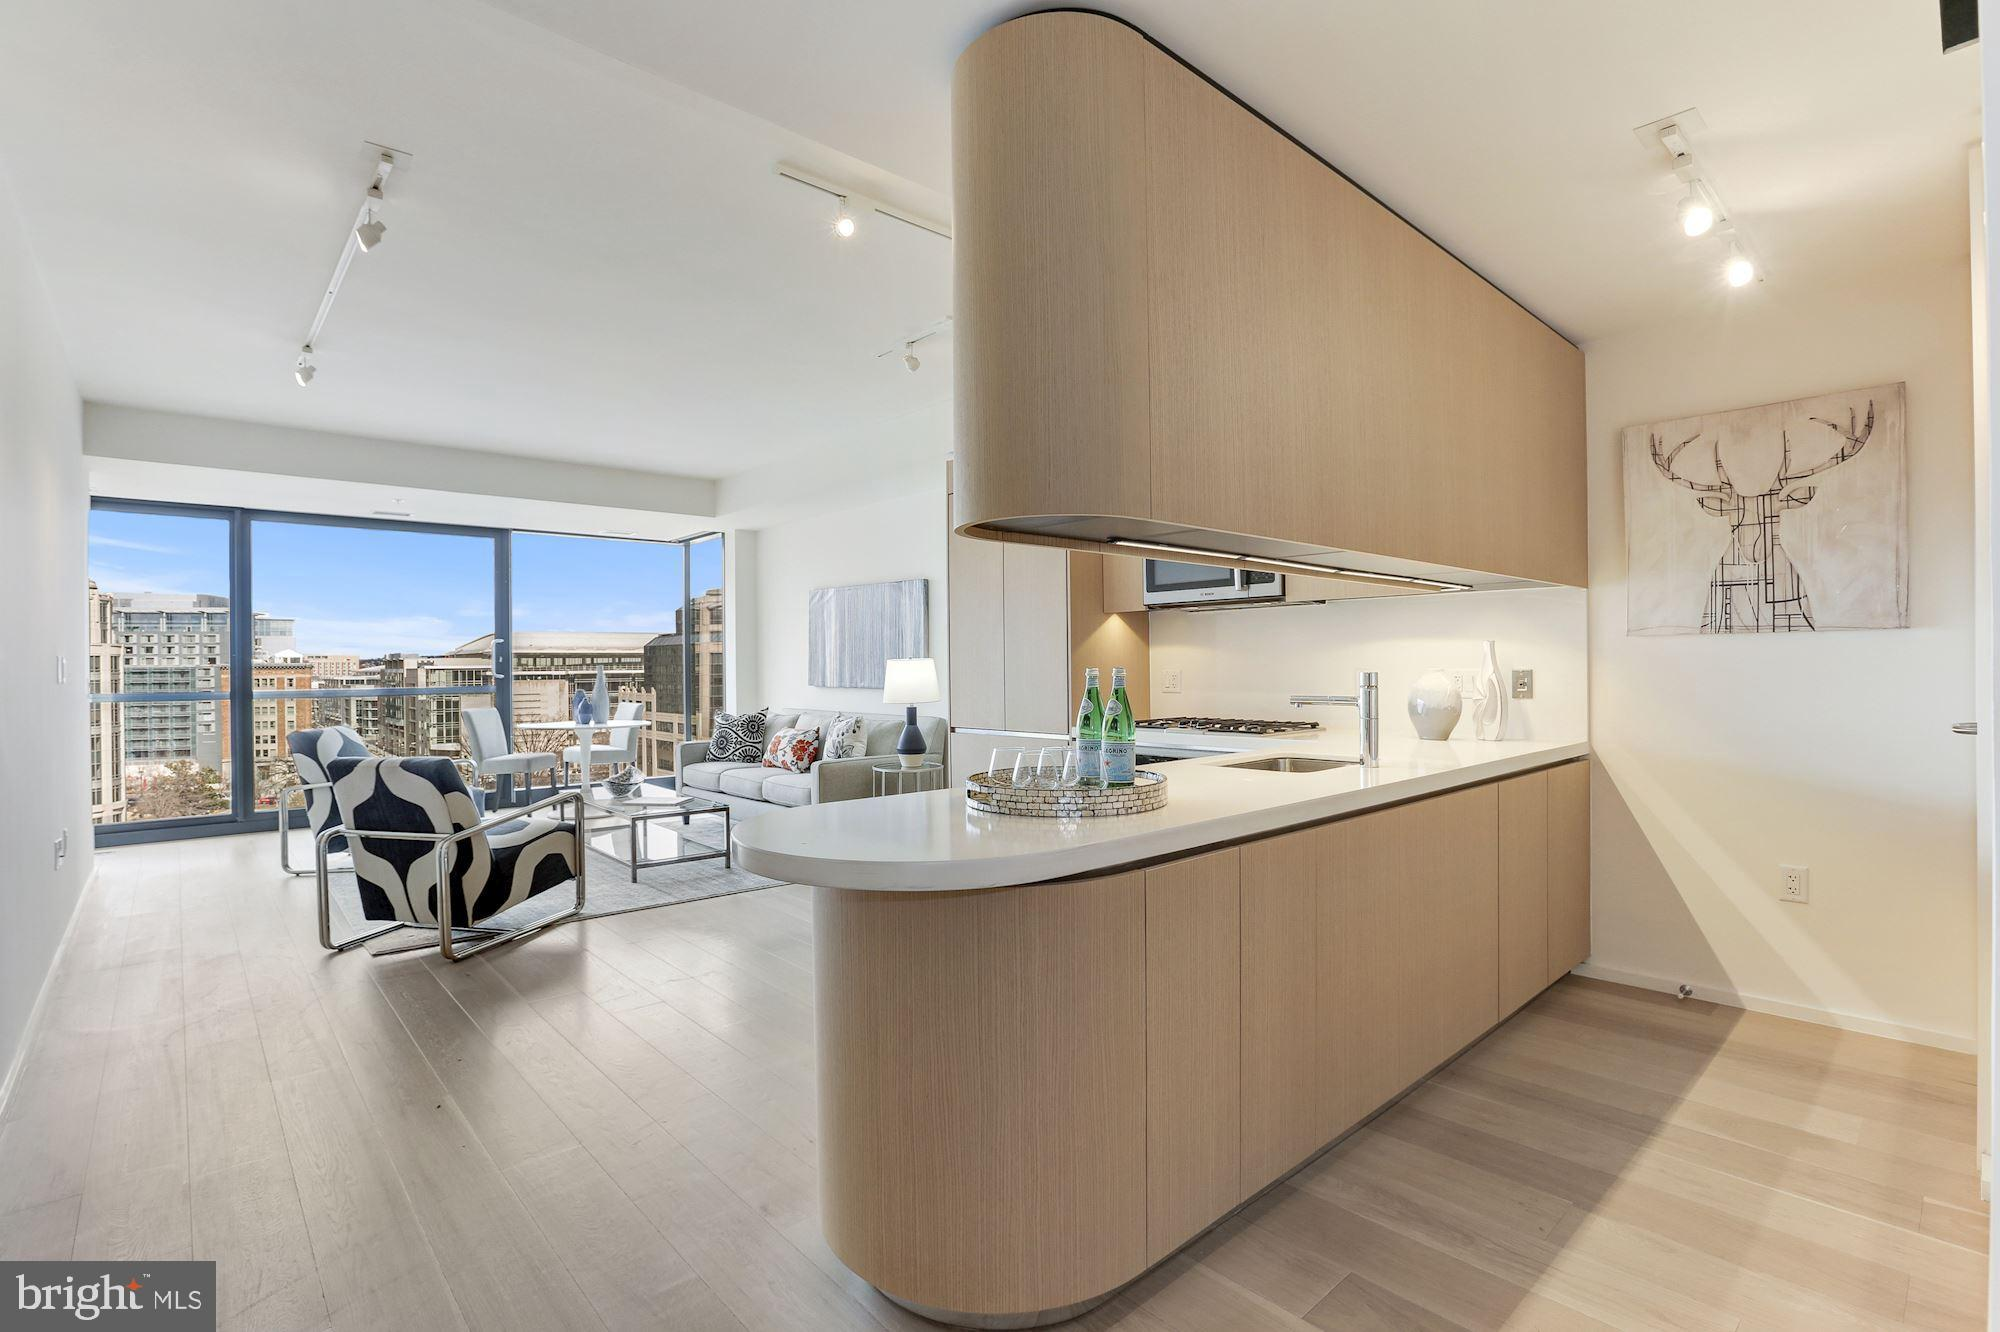 This penthouse-level luxury condo in the heart of DC~s City Center features over 800 square feet of living space with 1 bedroom and 1 full bath. Complete with hardwood floors, sleek contemporary finishes, and views of Downtown DC through the expansive floor-to-ceiling windows, this light-filled unit is move-in ready and comes with an assigned private parking space the attached underground garage. Building amenities include concierge services, security, a full-service fitness center, club room, as well as proximity (2 blocks) to the metro and the best shops and restaurants the city has to offer. Showings by appointment only.